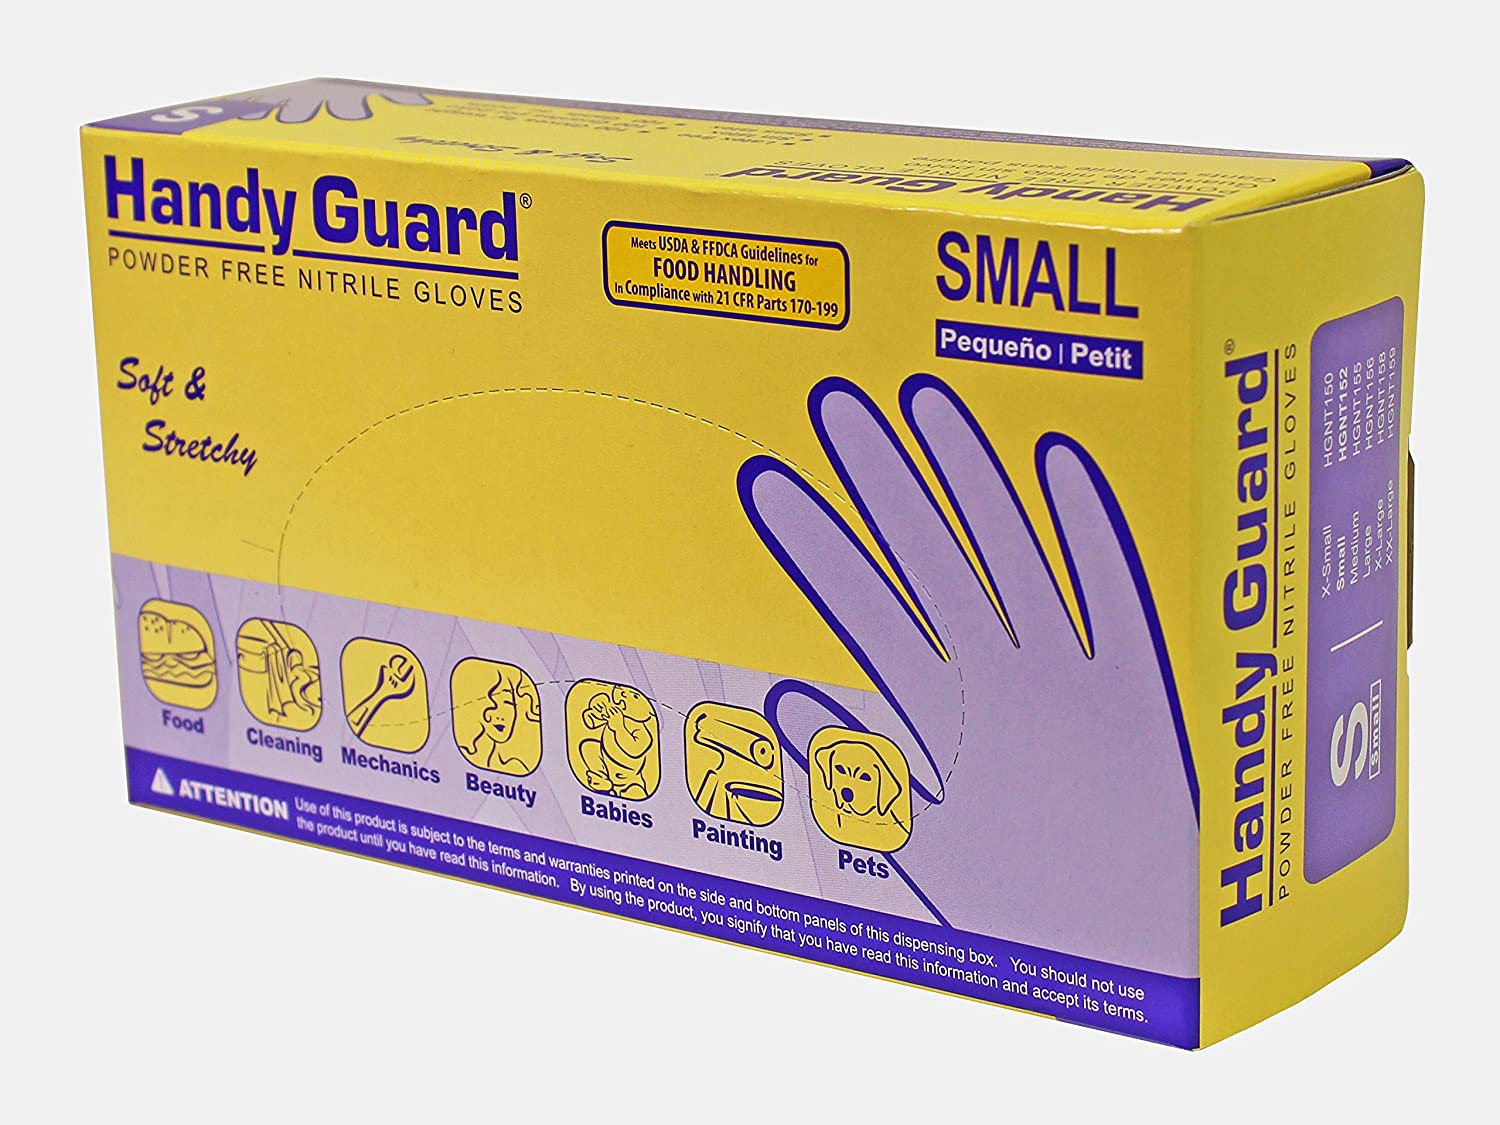 Adenna Handy Guard 3.5 mil Nitrile Powder Free Gloves (Violet, Small) Box of 100